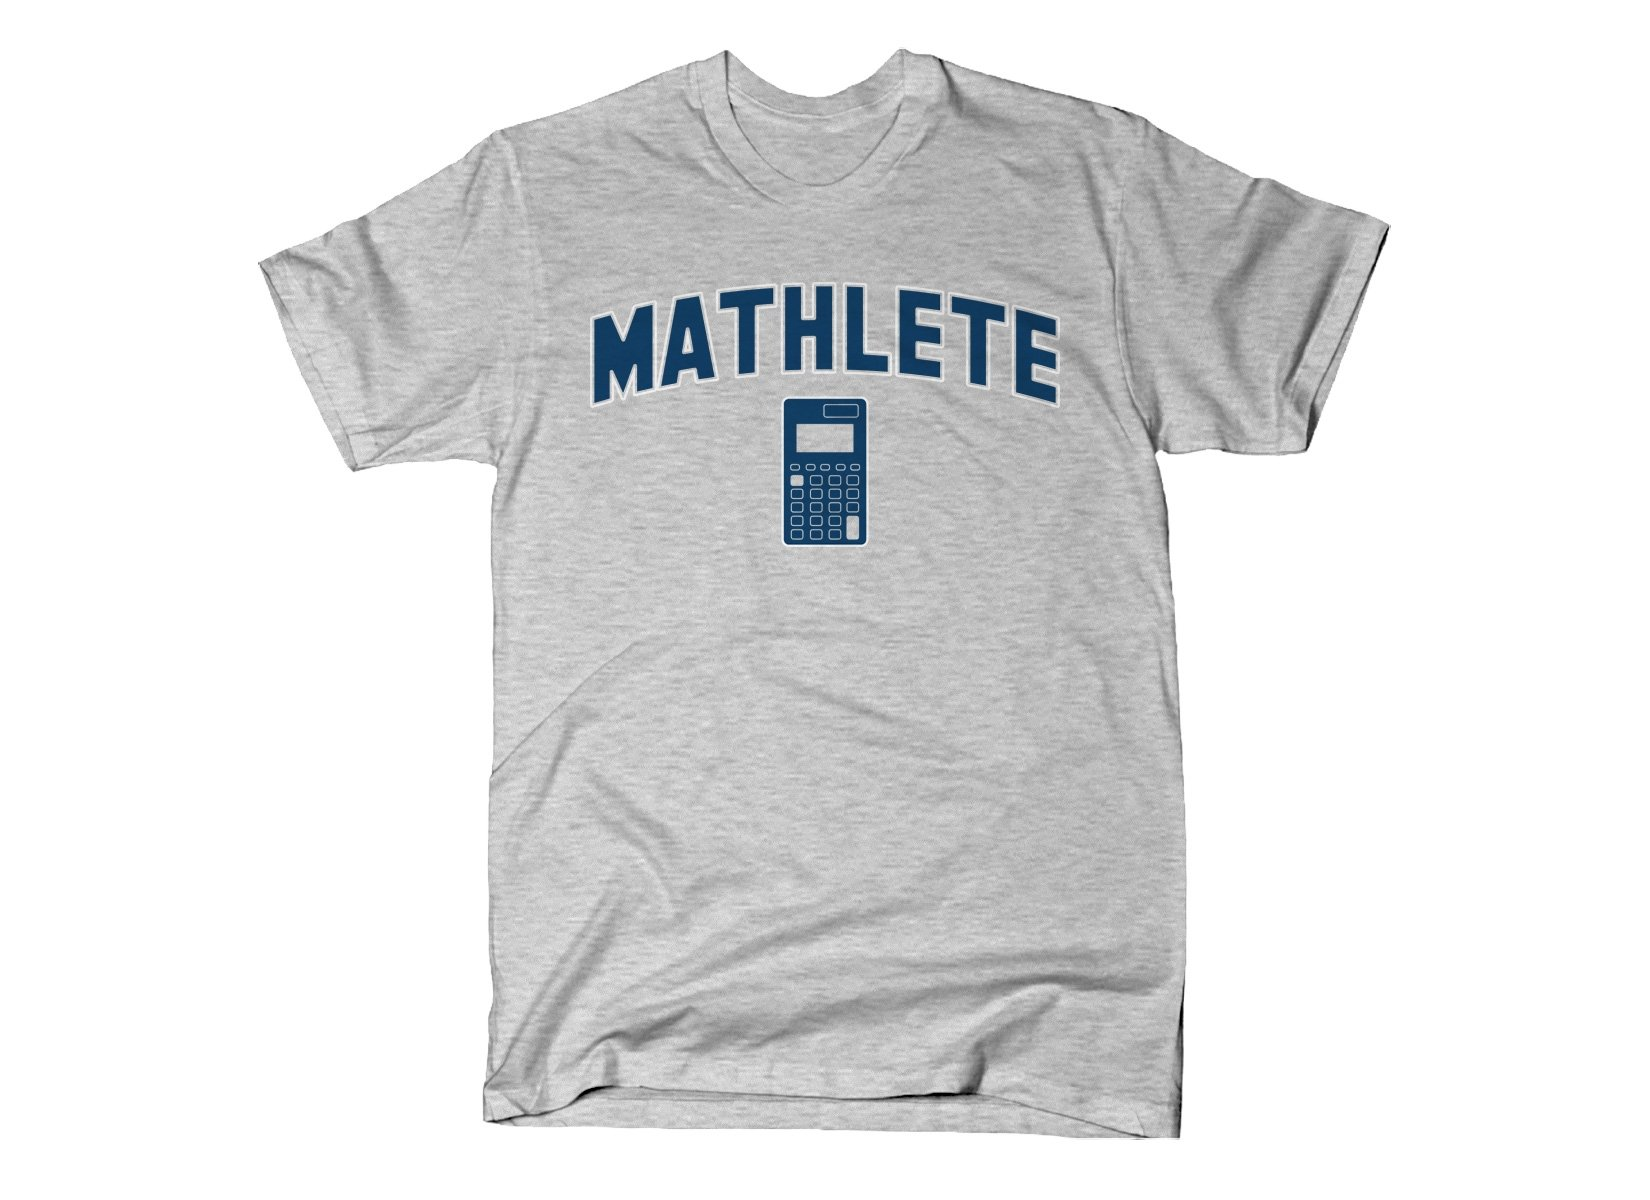 Mathlete on Mens T-Shirt